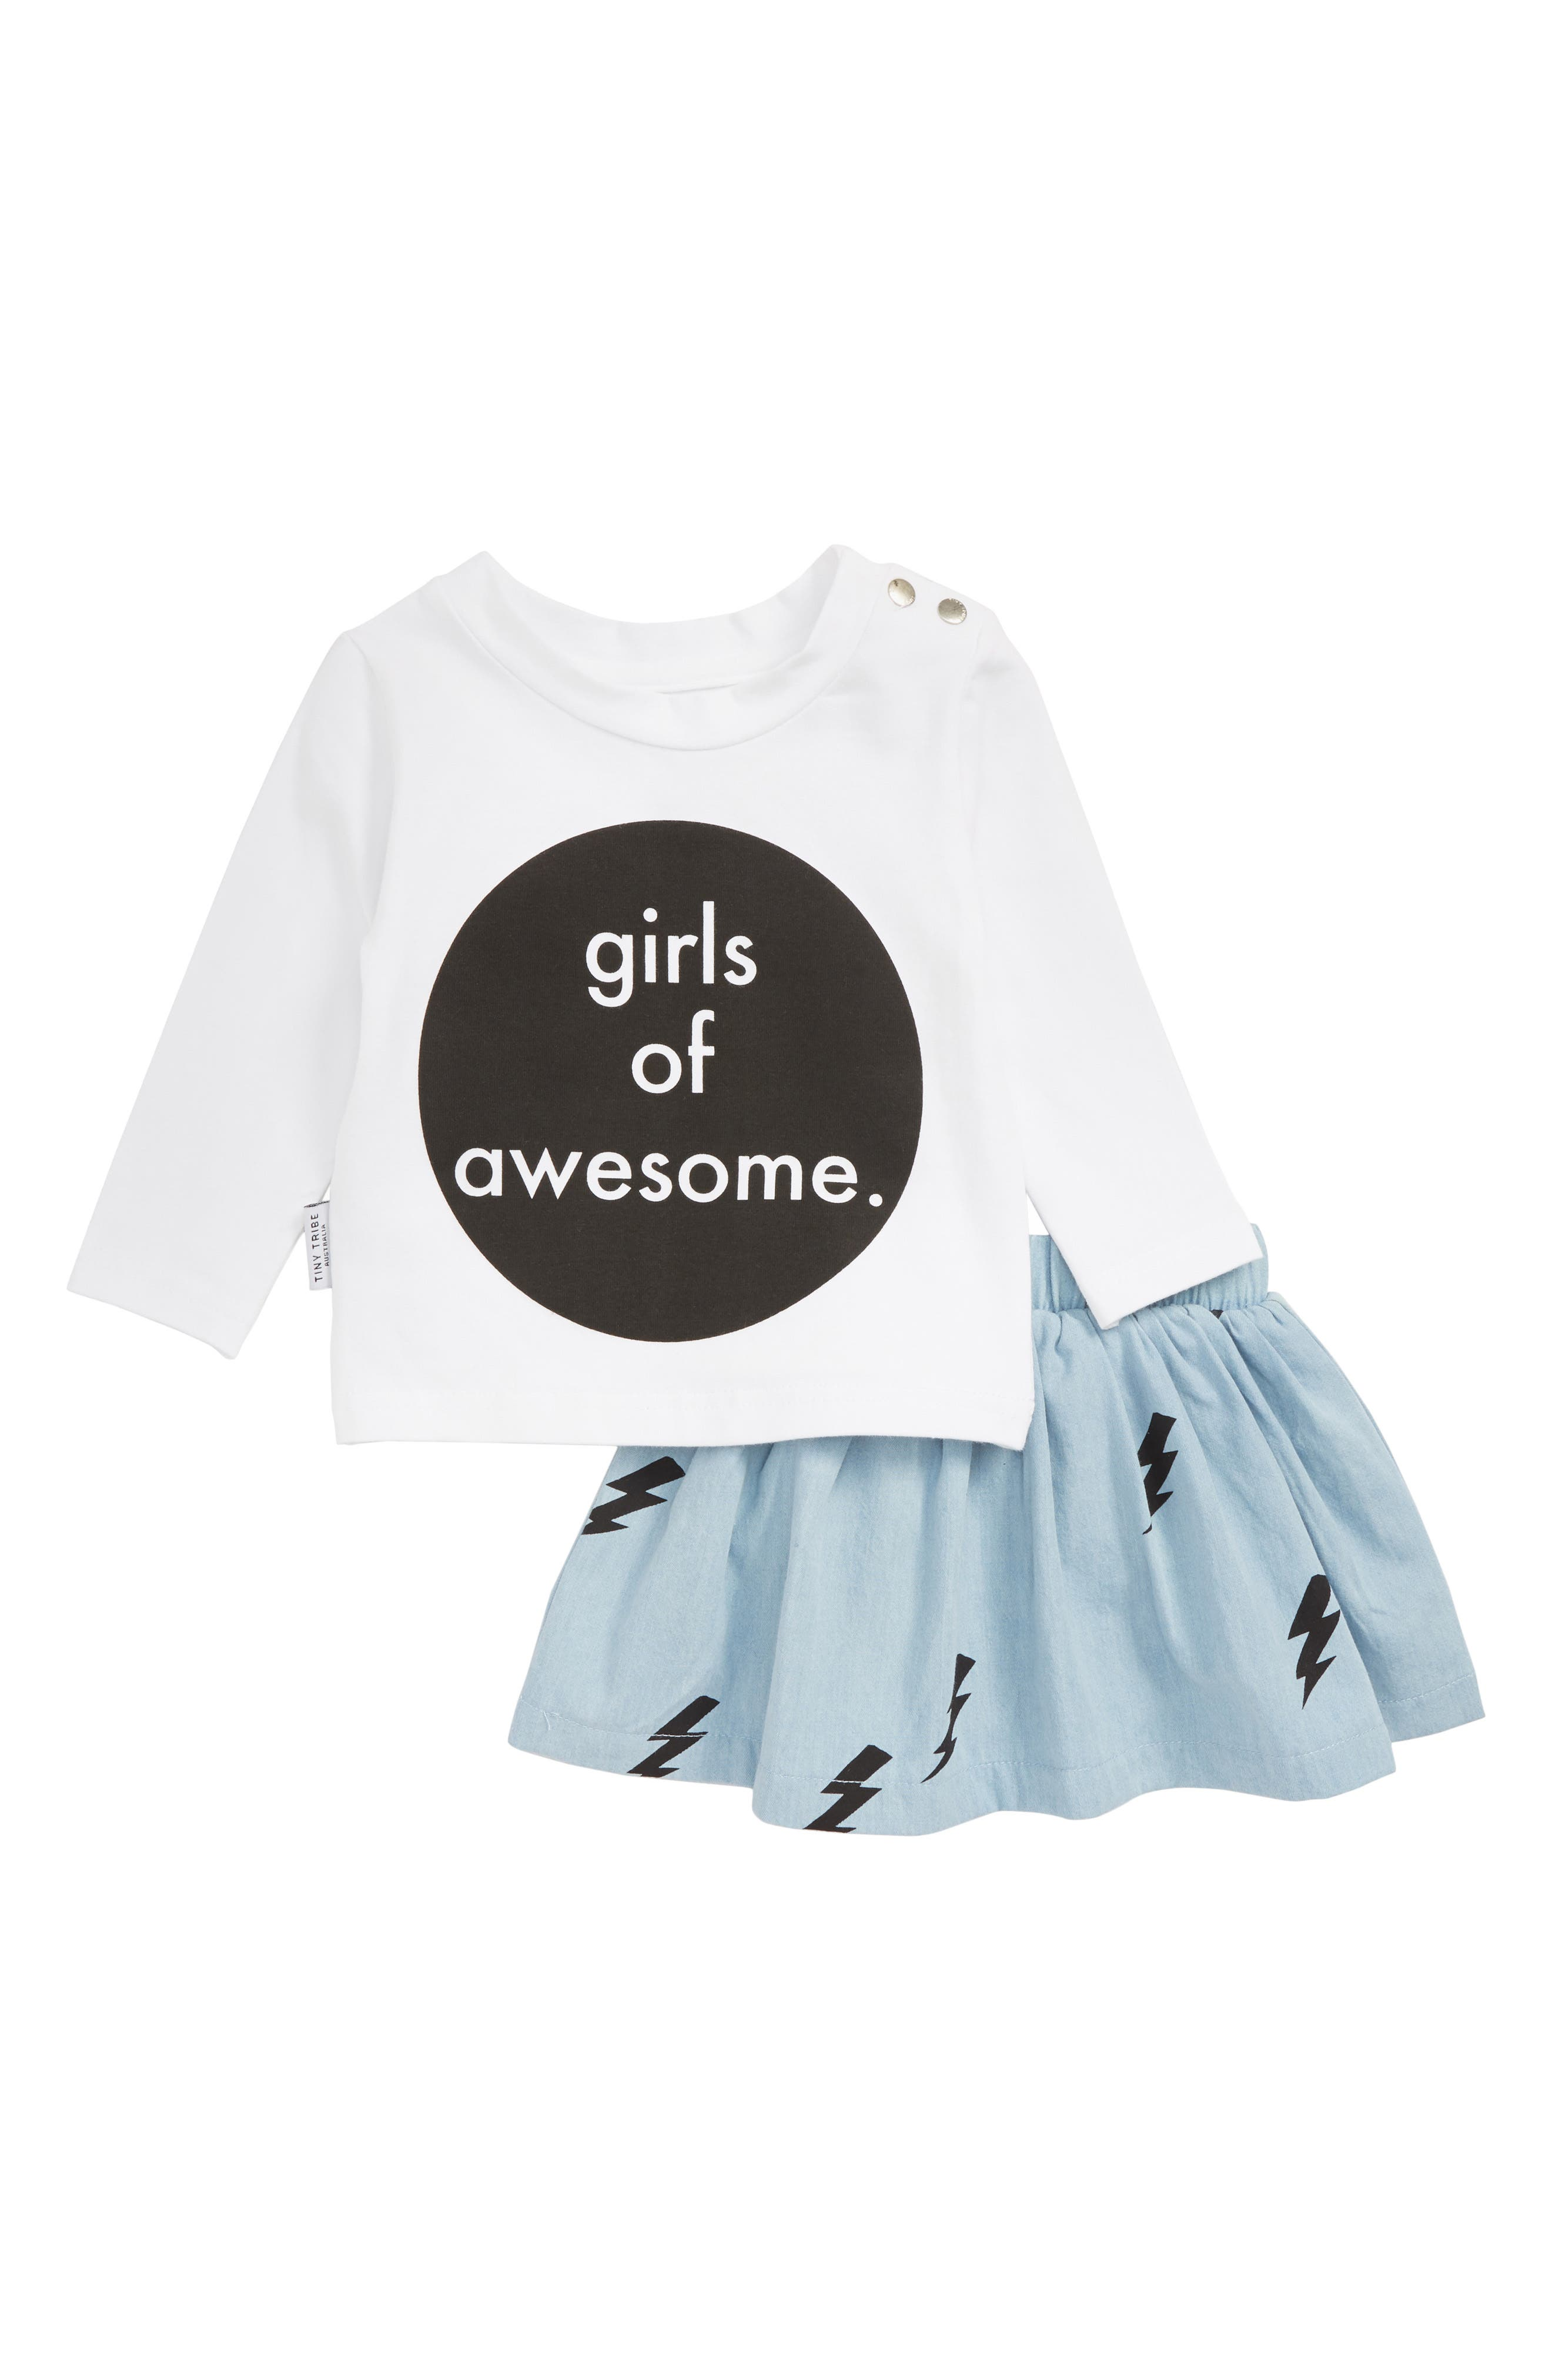 Girls of Awesome Tee & Skirt Set,                             Main thumbnail 1, color,                             109